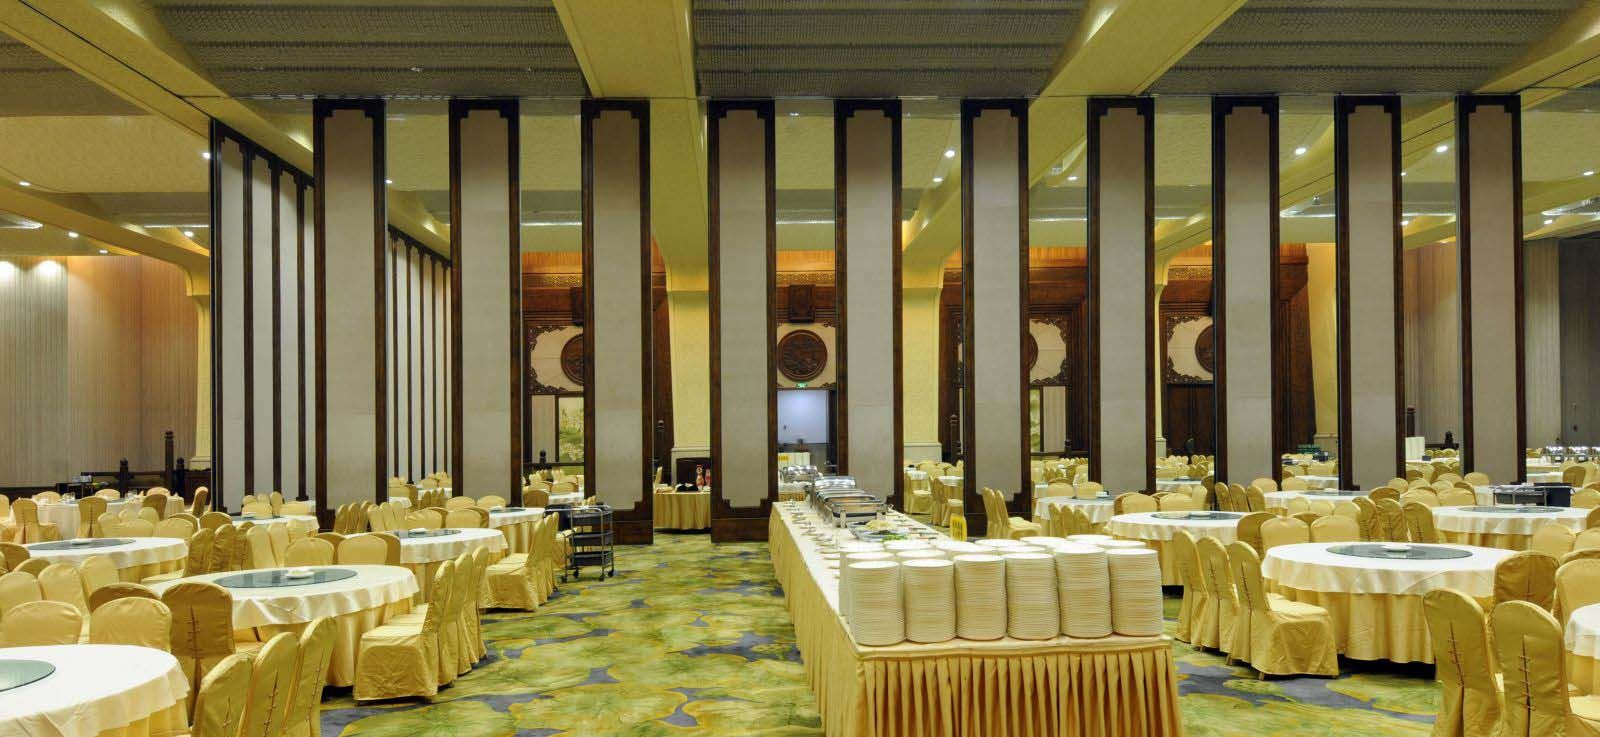 banquet hall partition wall